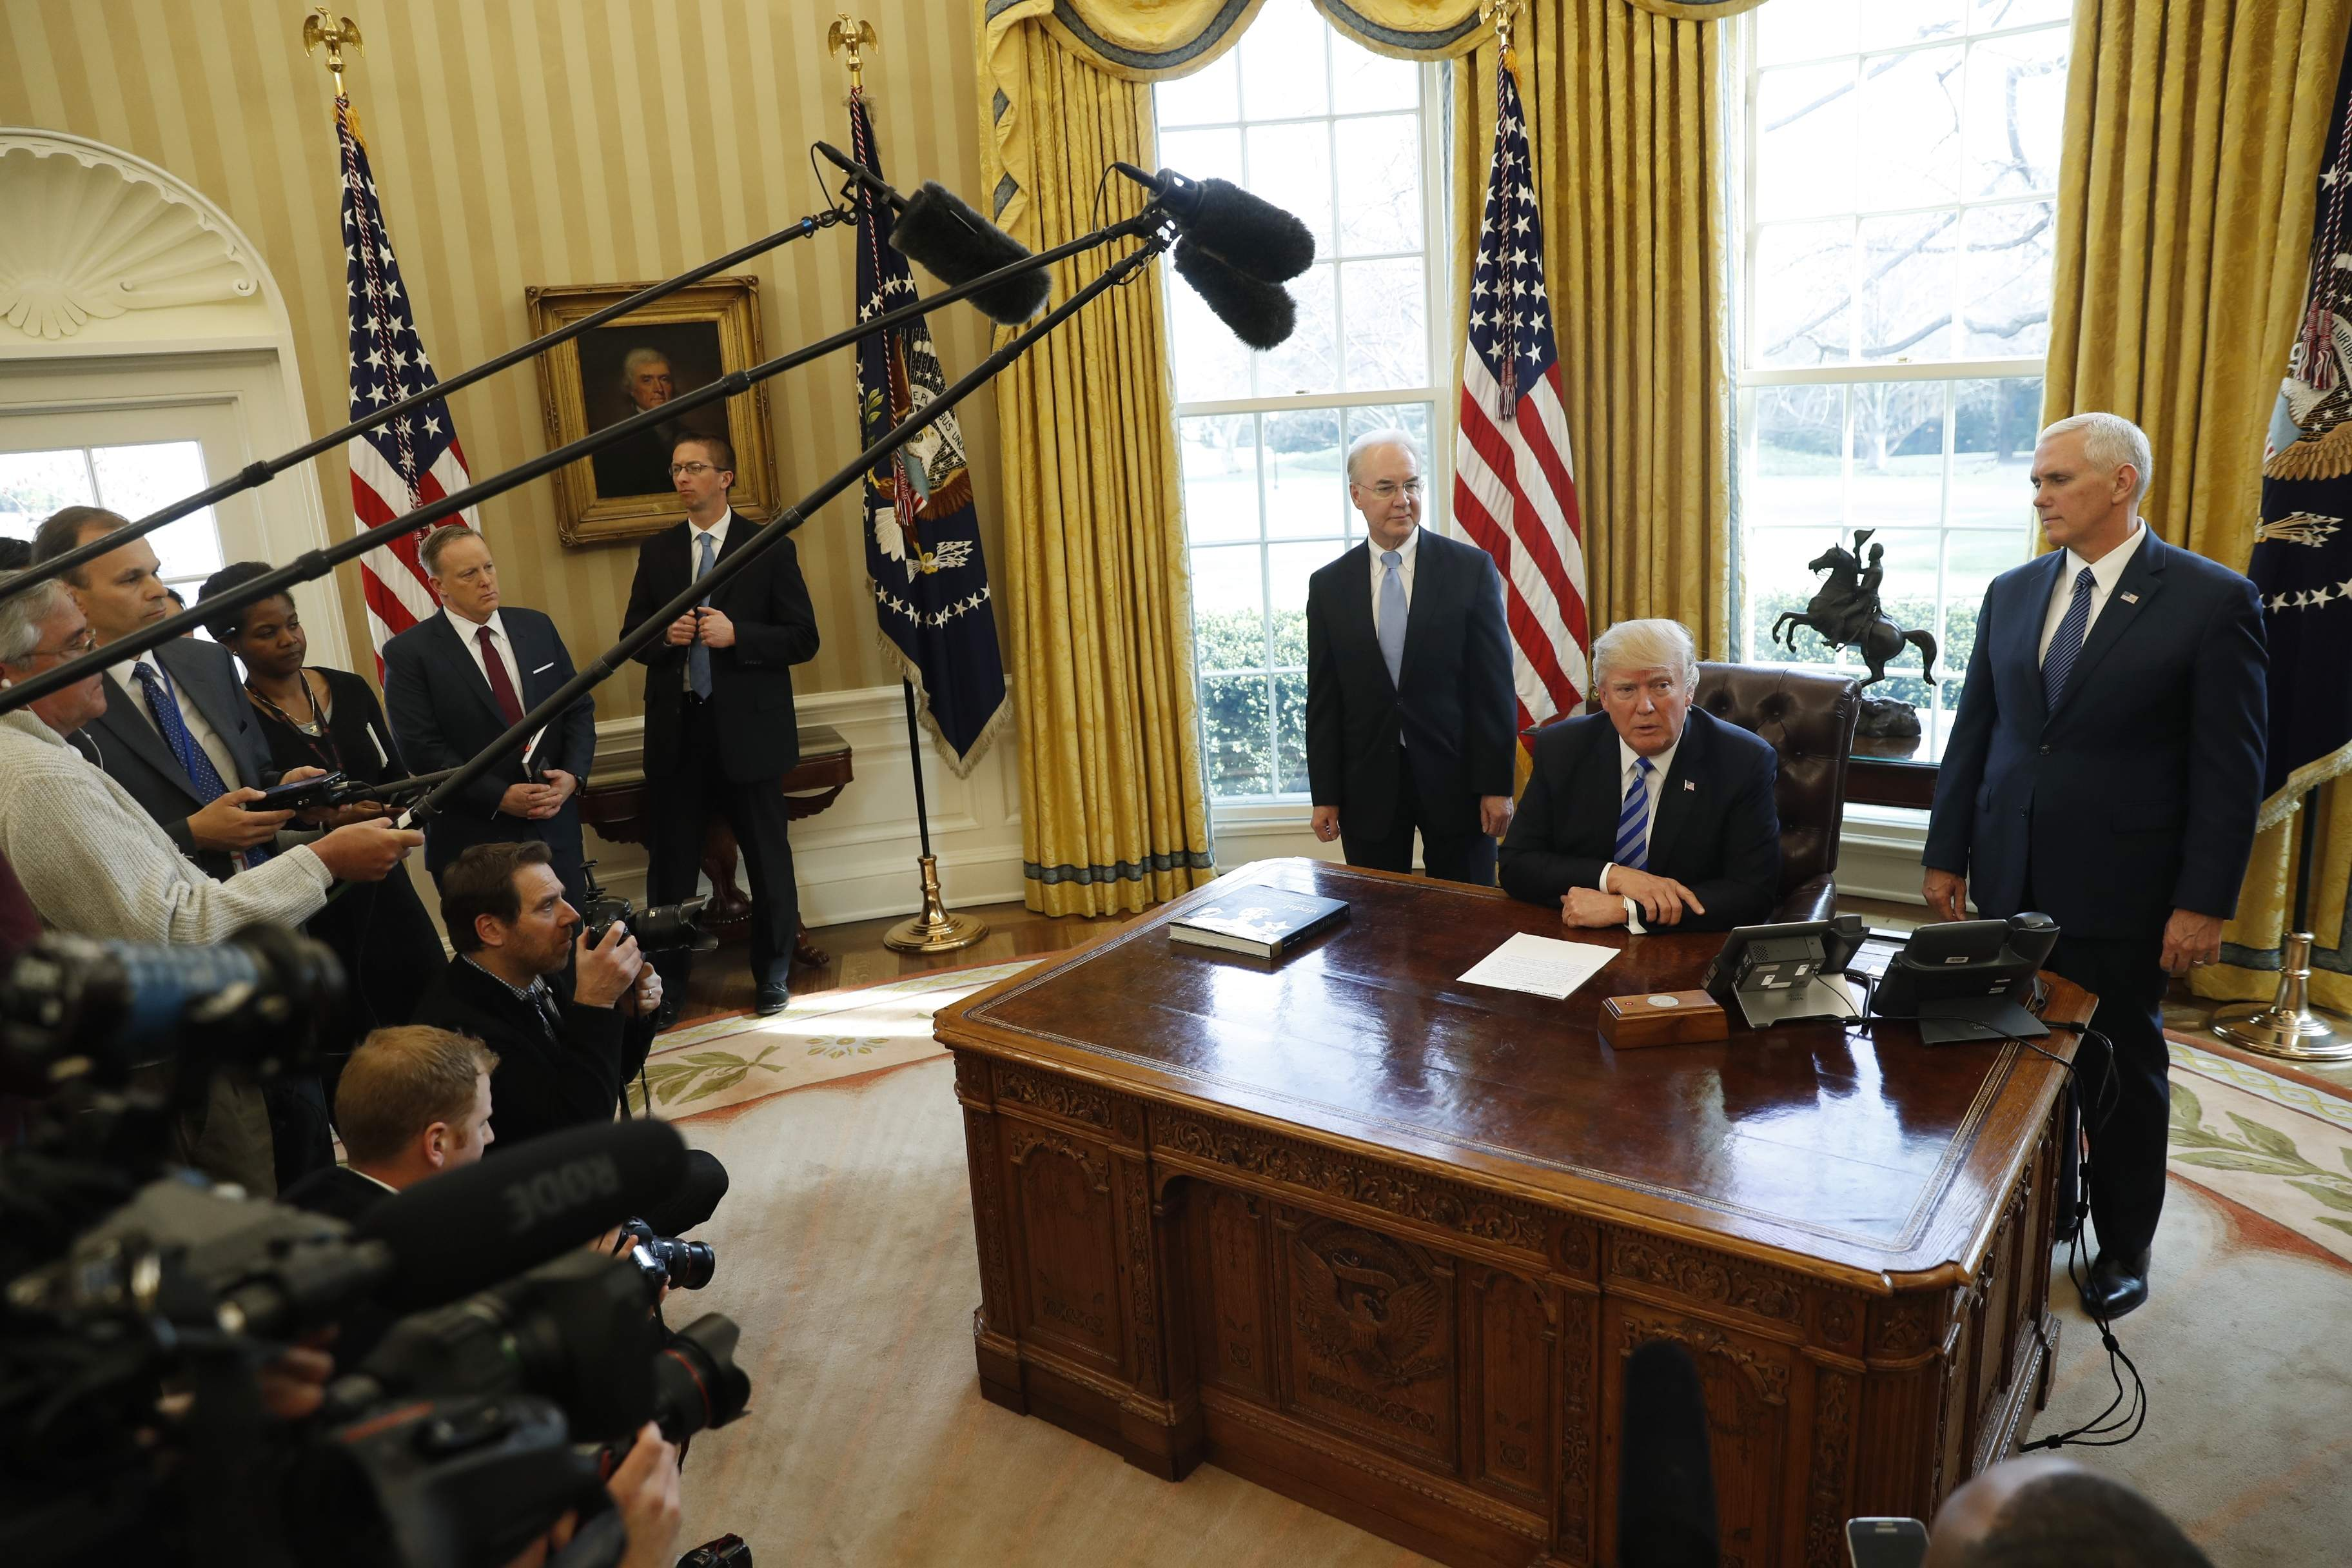 DAY 64 - In this March 24, 2017, file photo, President Donald Trump, flanked by Health and Human Services Secretary Tom Price, left, and Vice President Mike Pence, meets with members of the media regarding the health care overhaul bill in the Oval Office of the White House in Washington. (AP Photo/Pablo Martinez Monsivais, File)